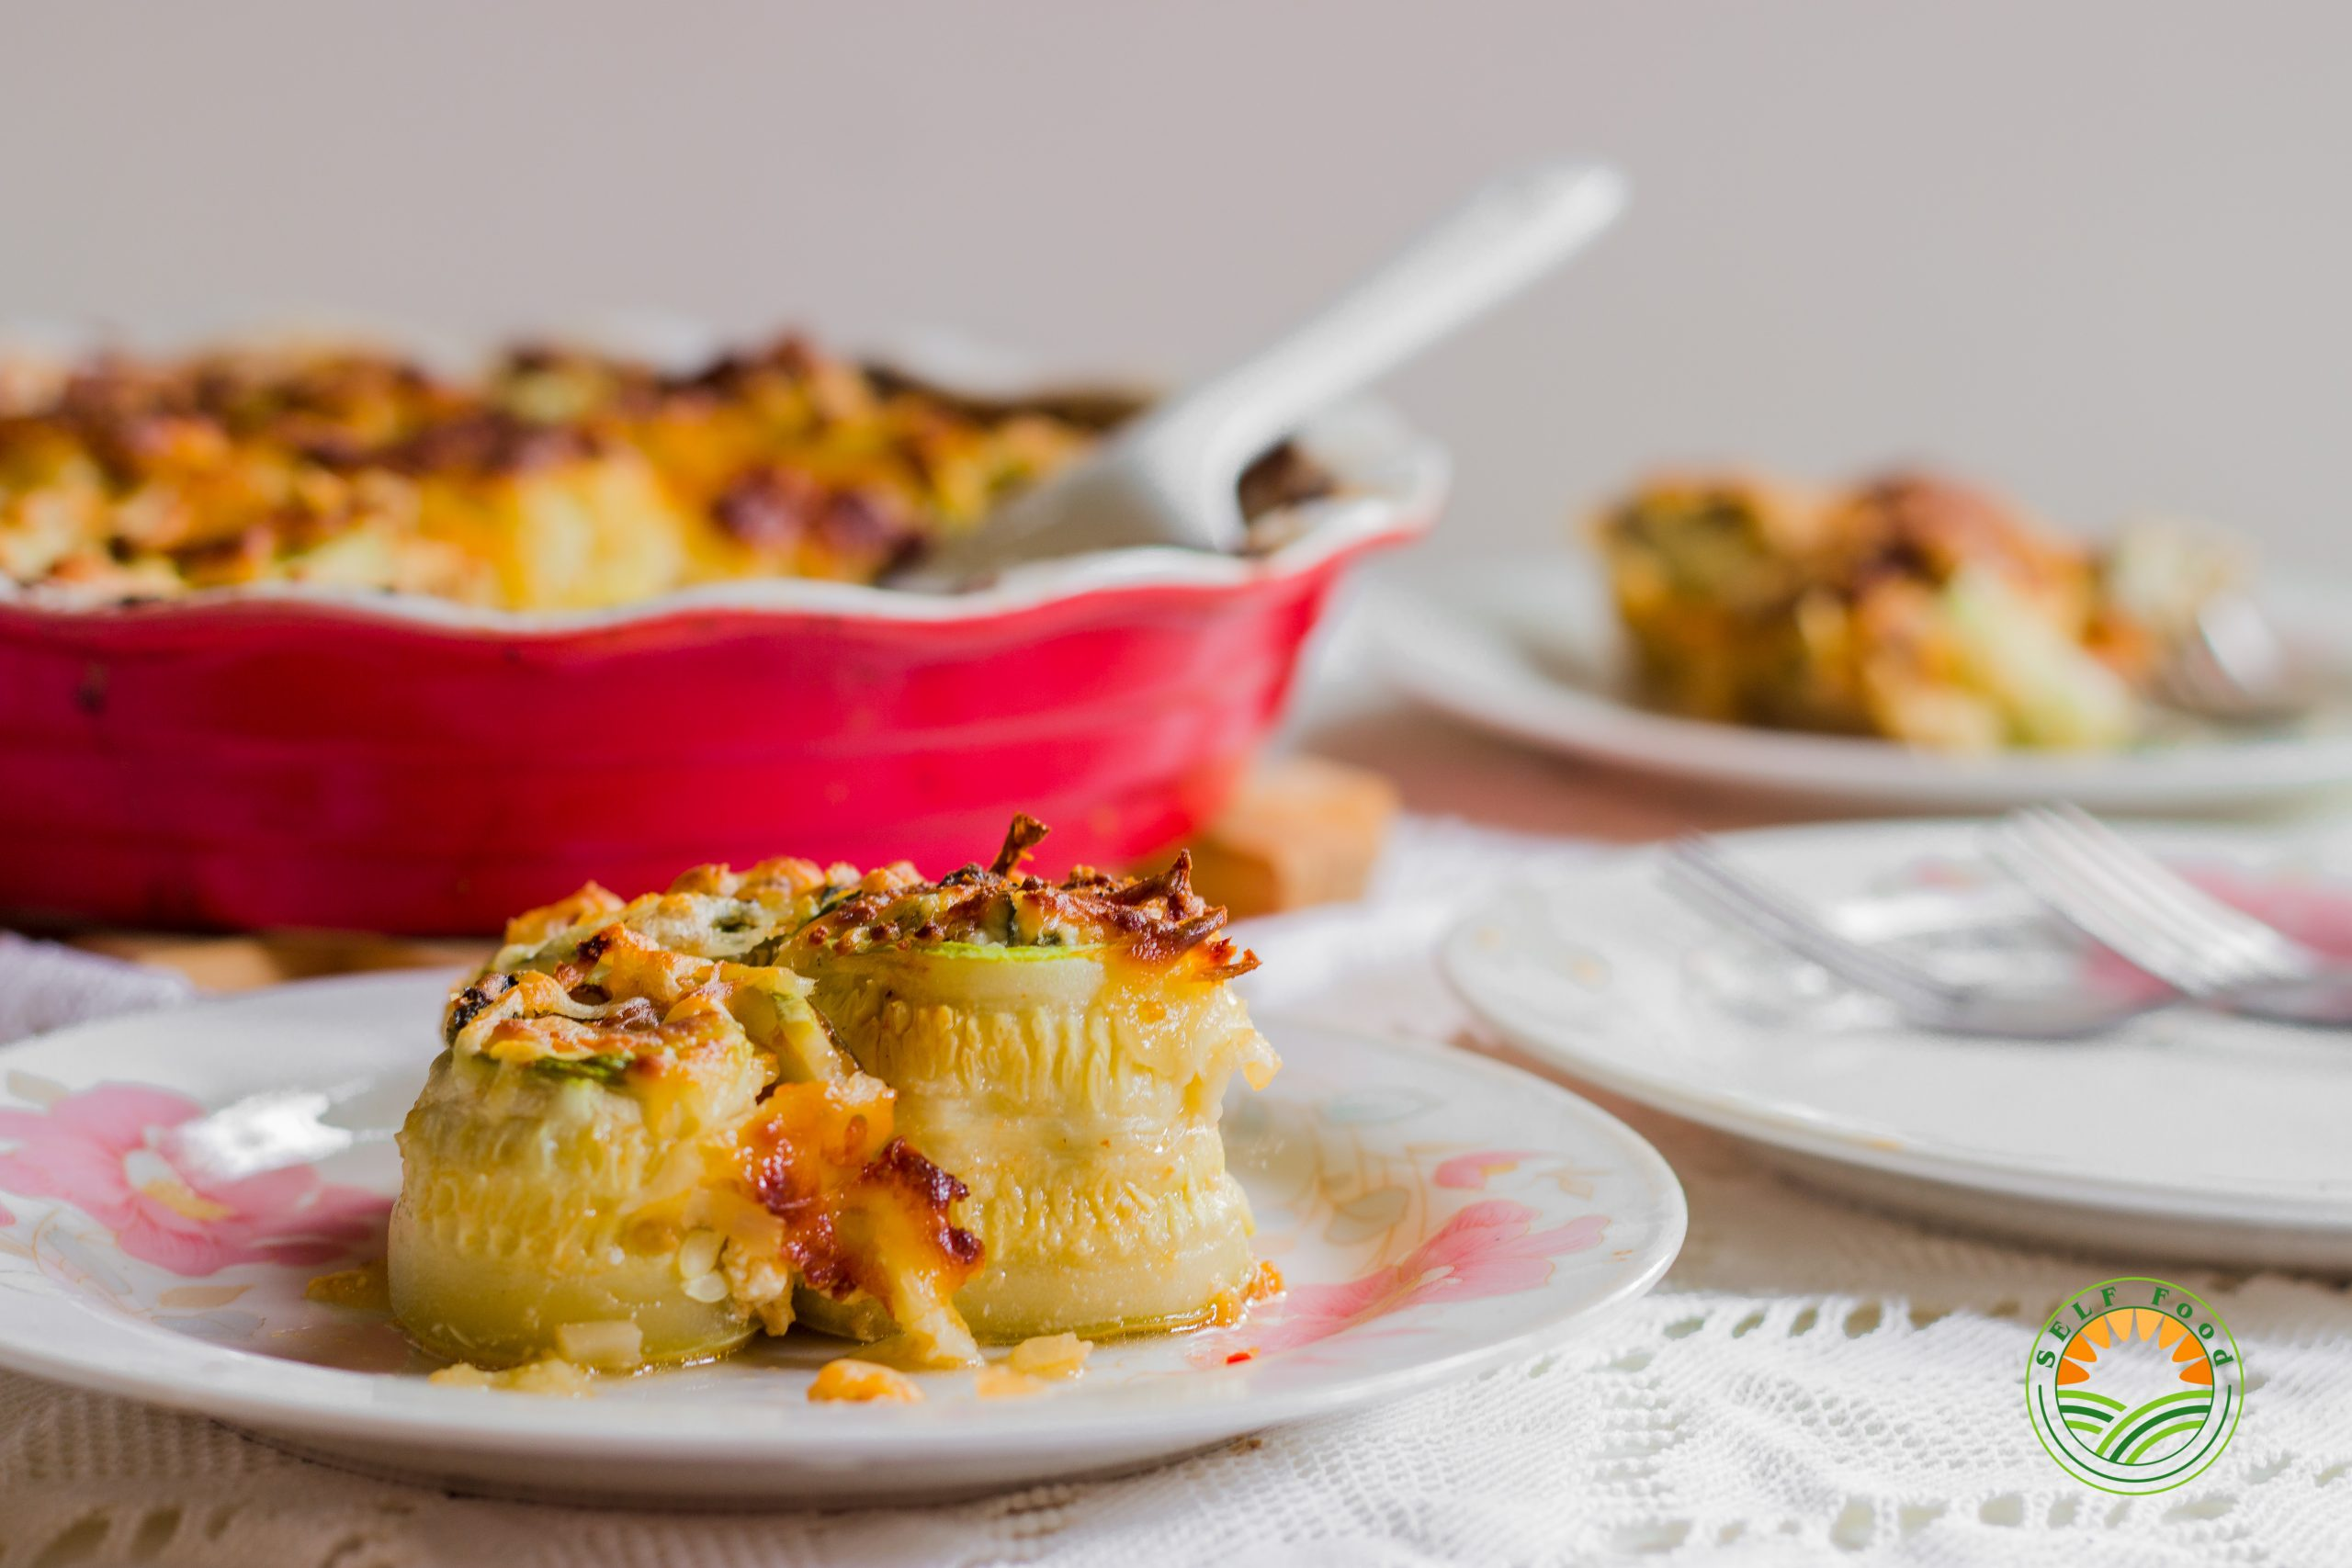 Vegetarian Lasagne with Zucchini